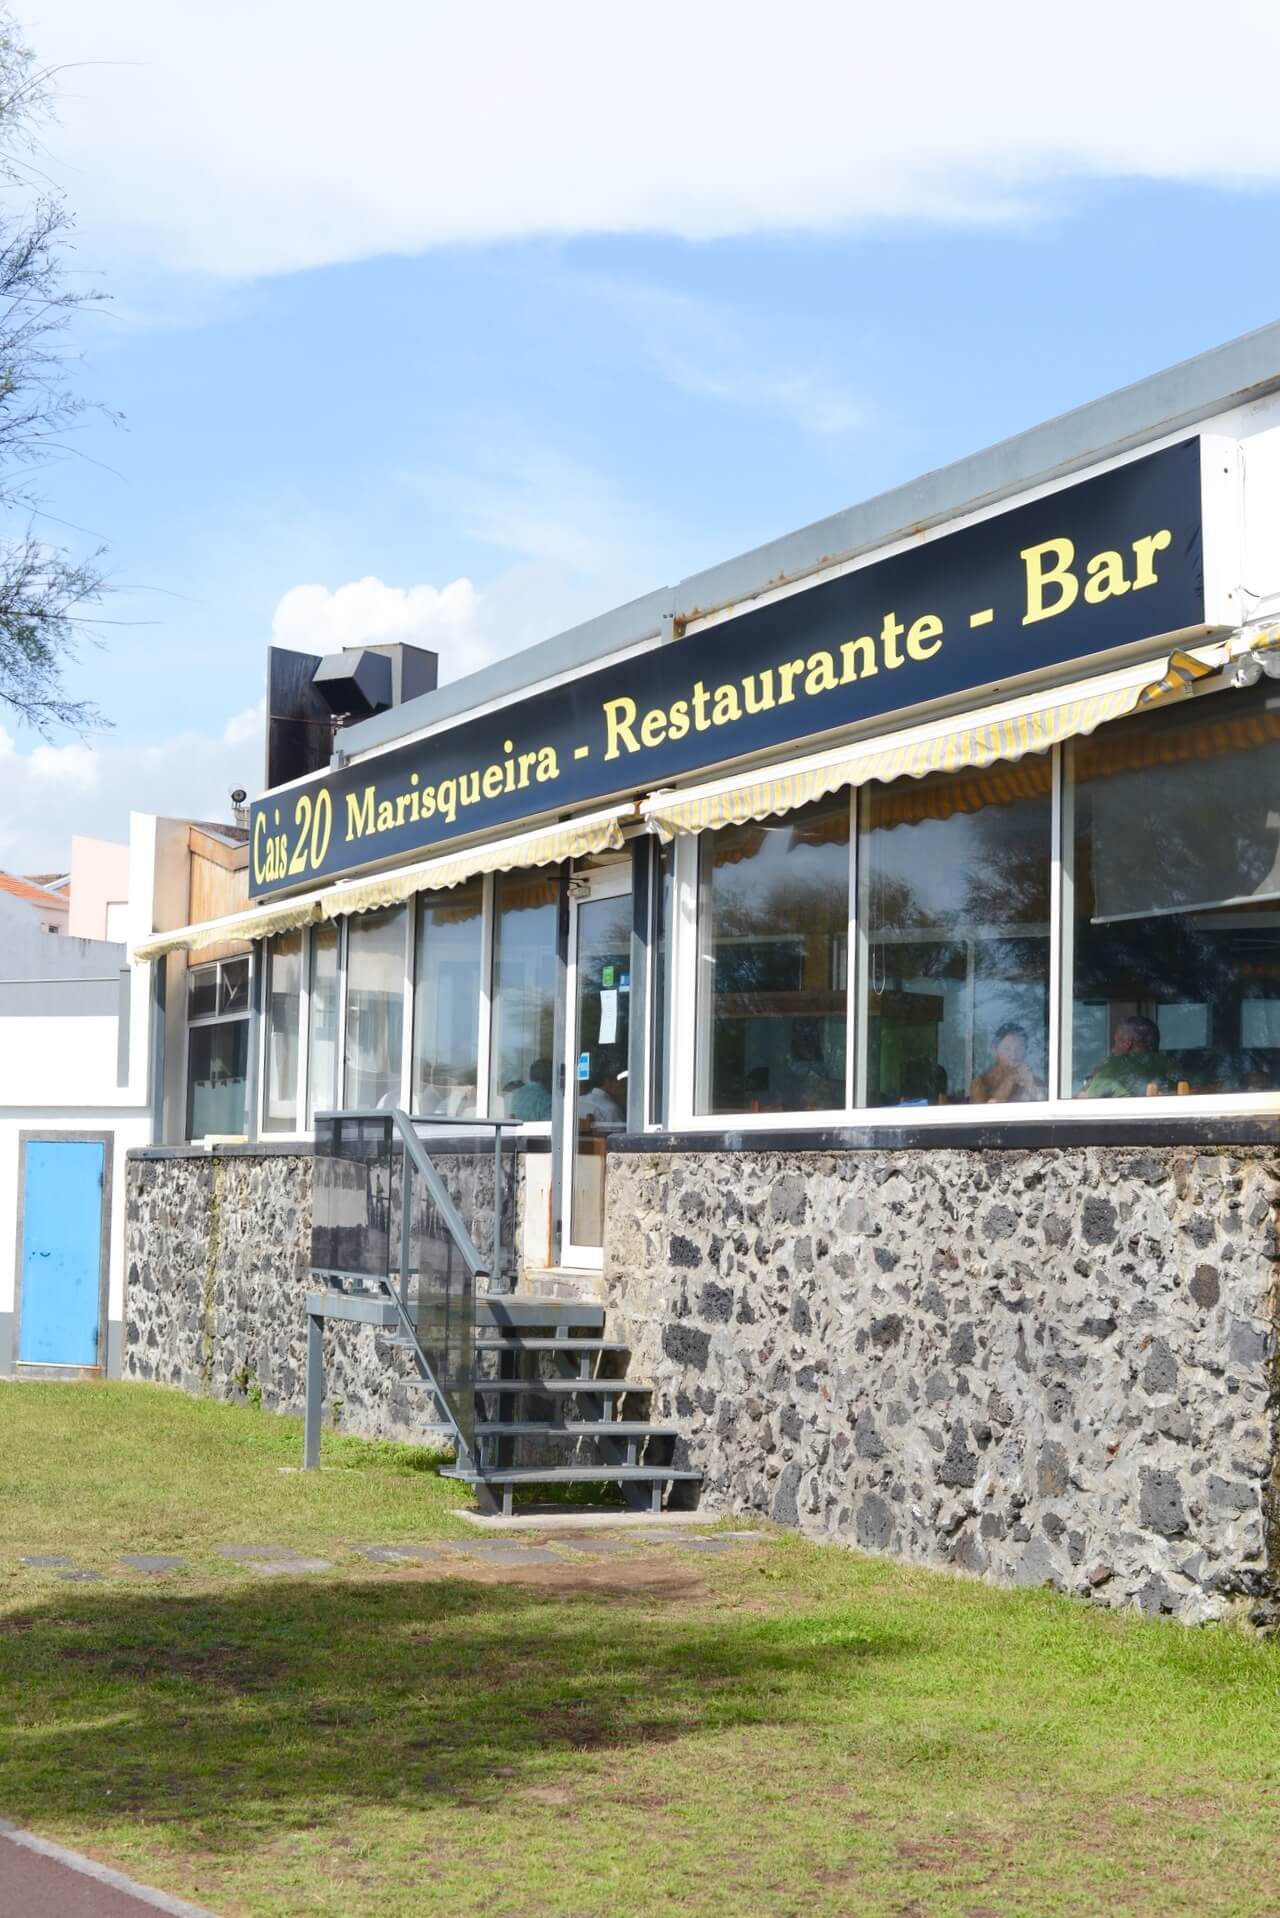 Cais 20 in Sao Miguel is a great restaurant for lunch or dinner